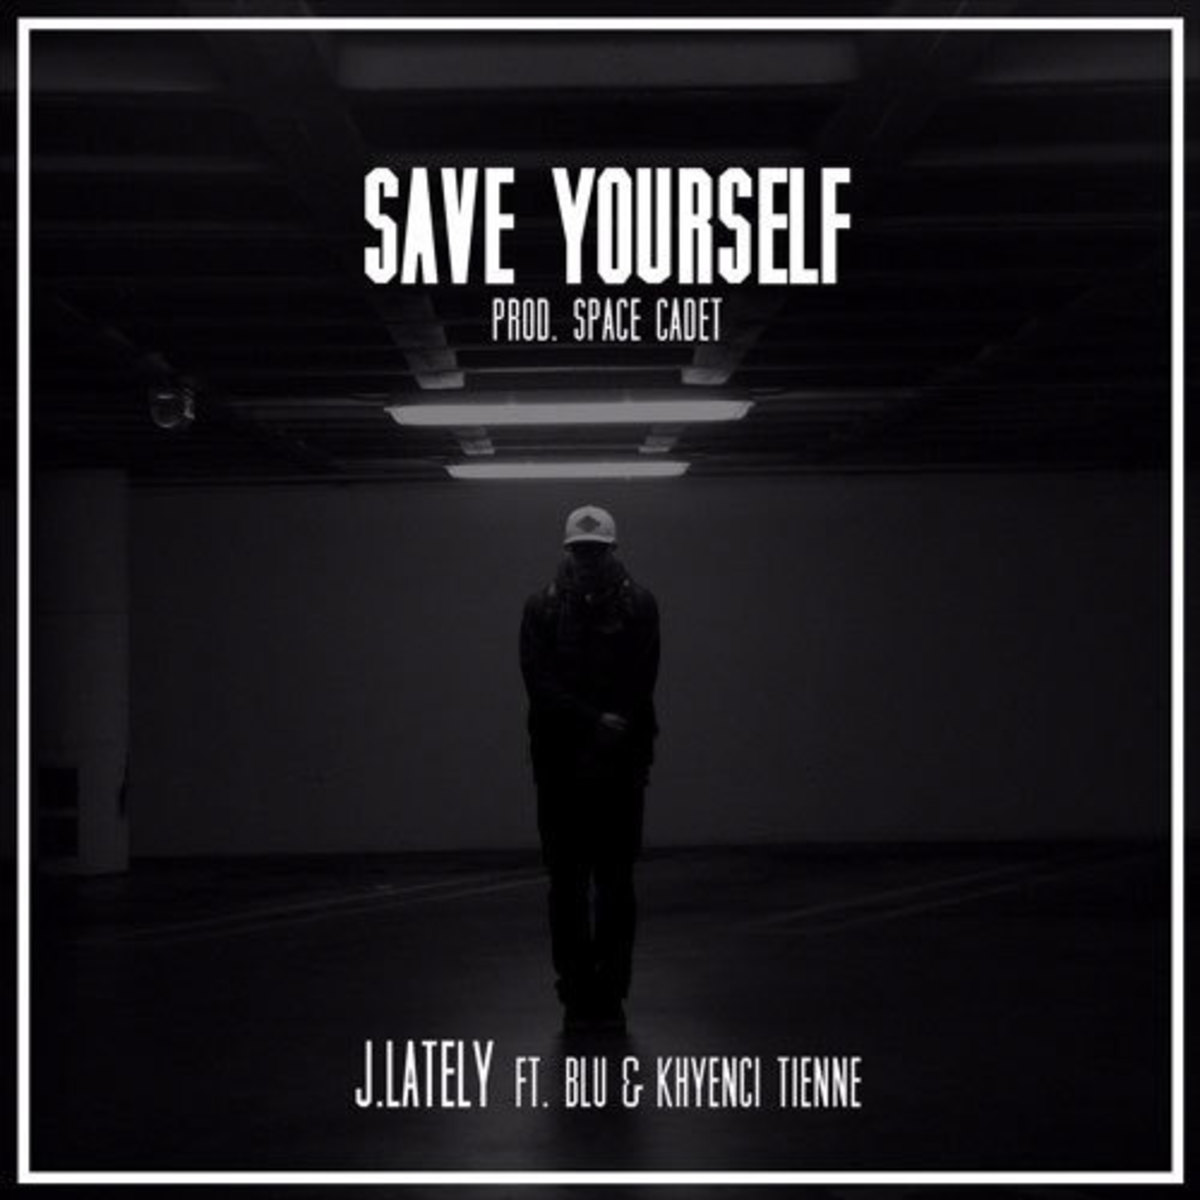 j-lately-save-yourself.jpg